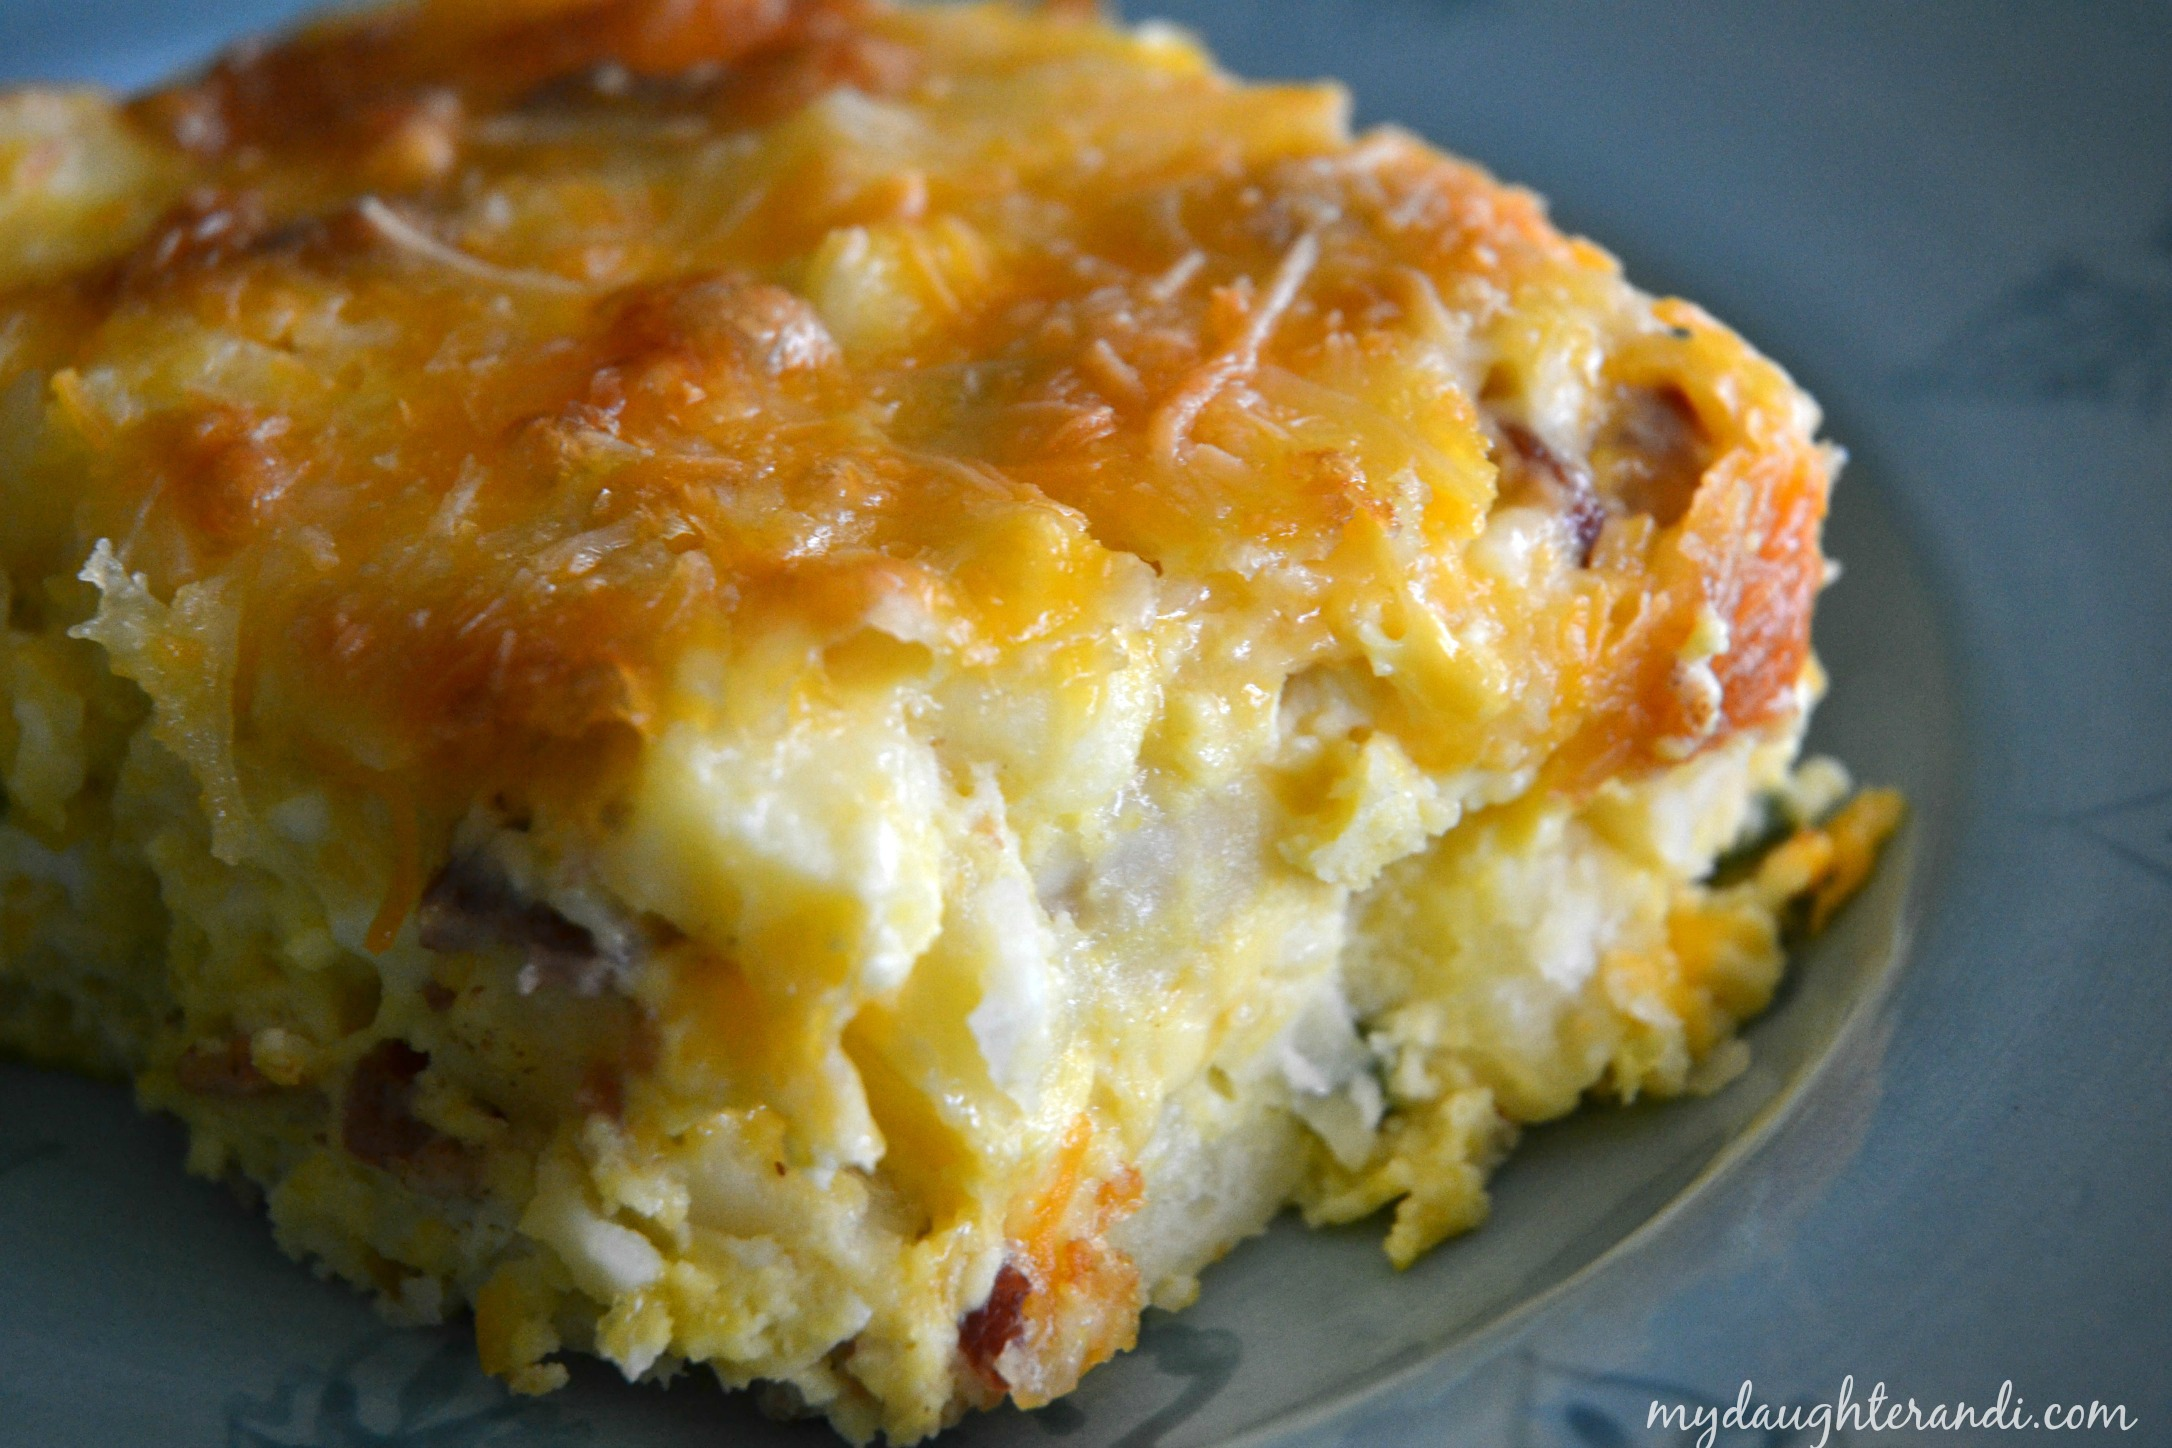 my daughter and i christmas morning breakfast casserole click through for full recipe - Make Ahead Christmas Dinner Recipes